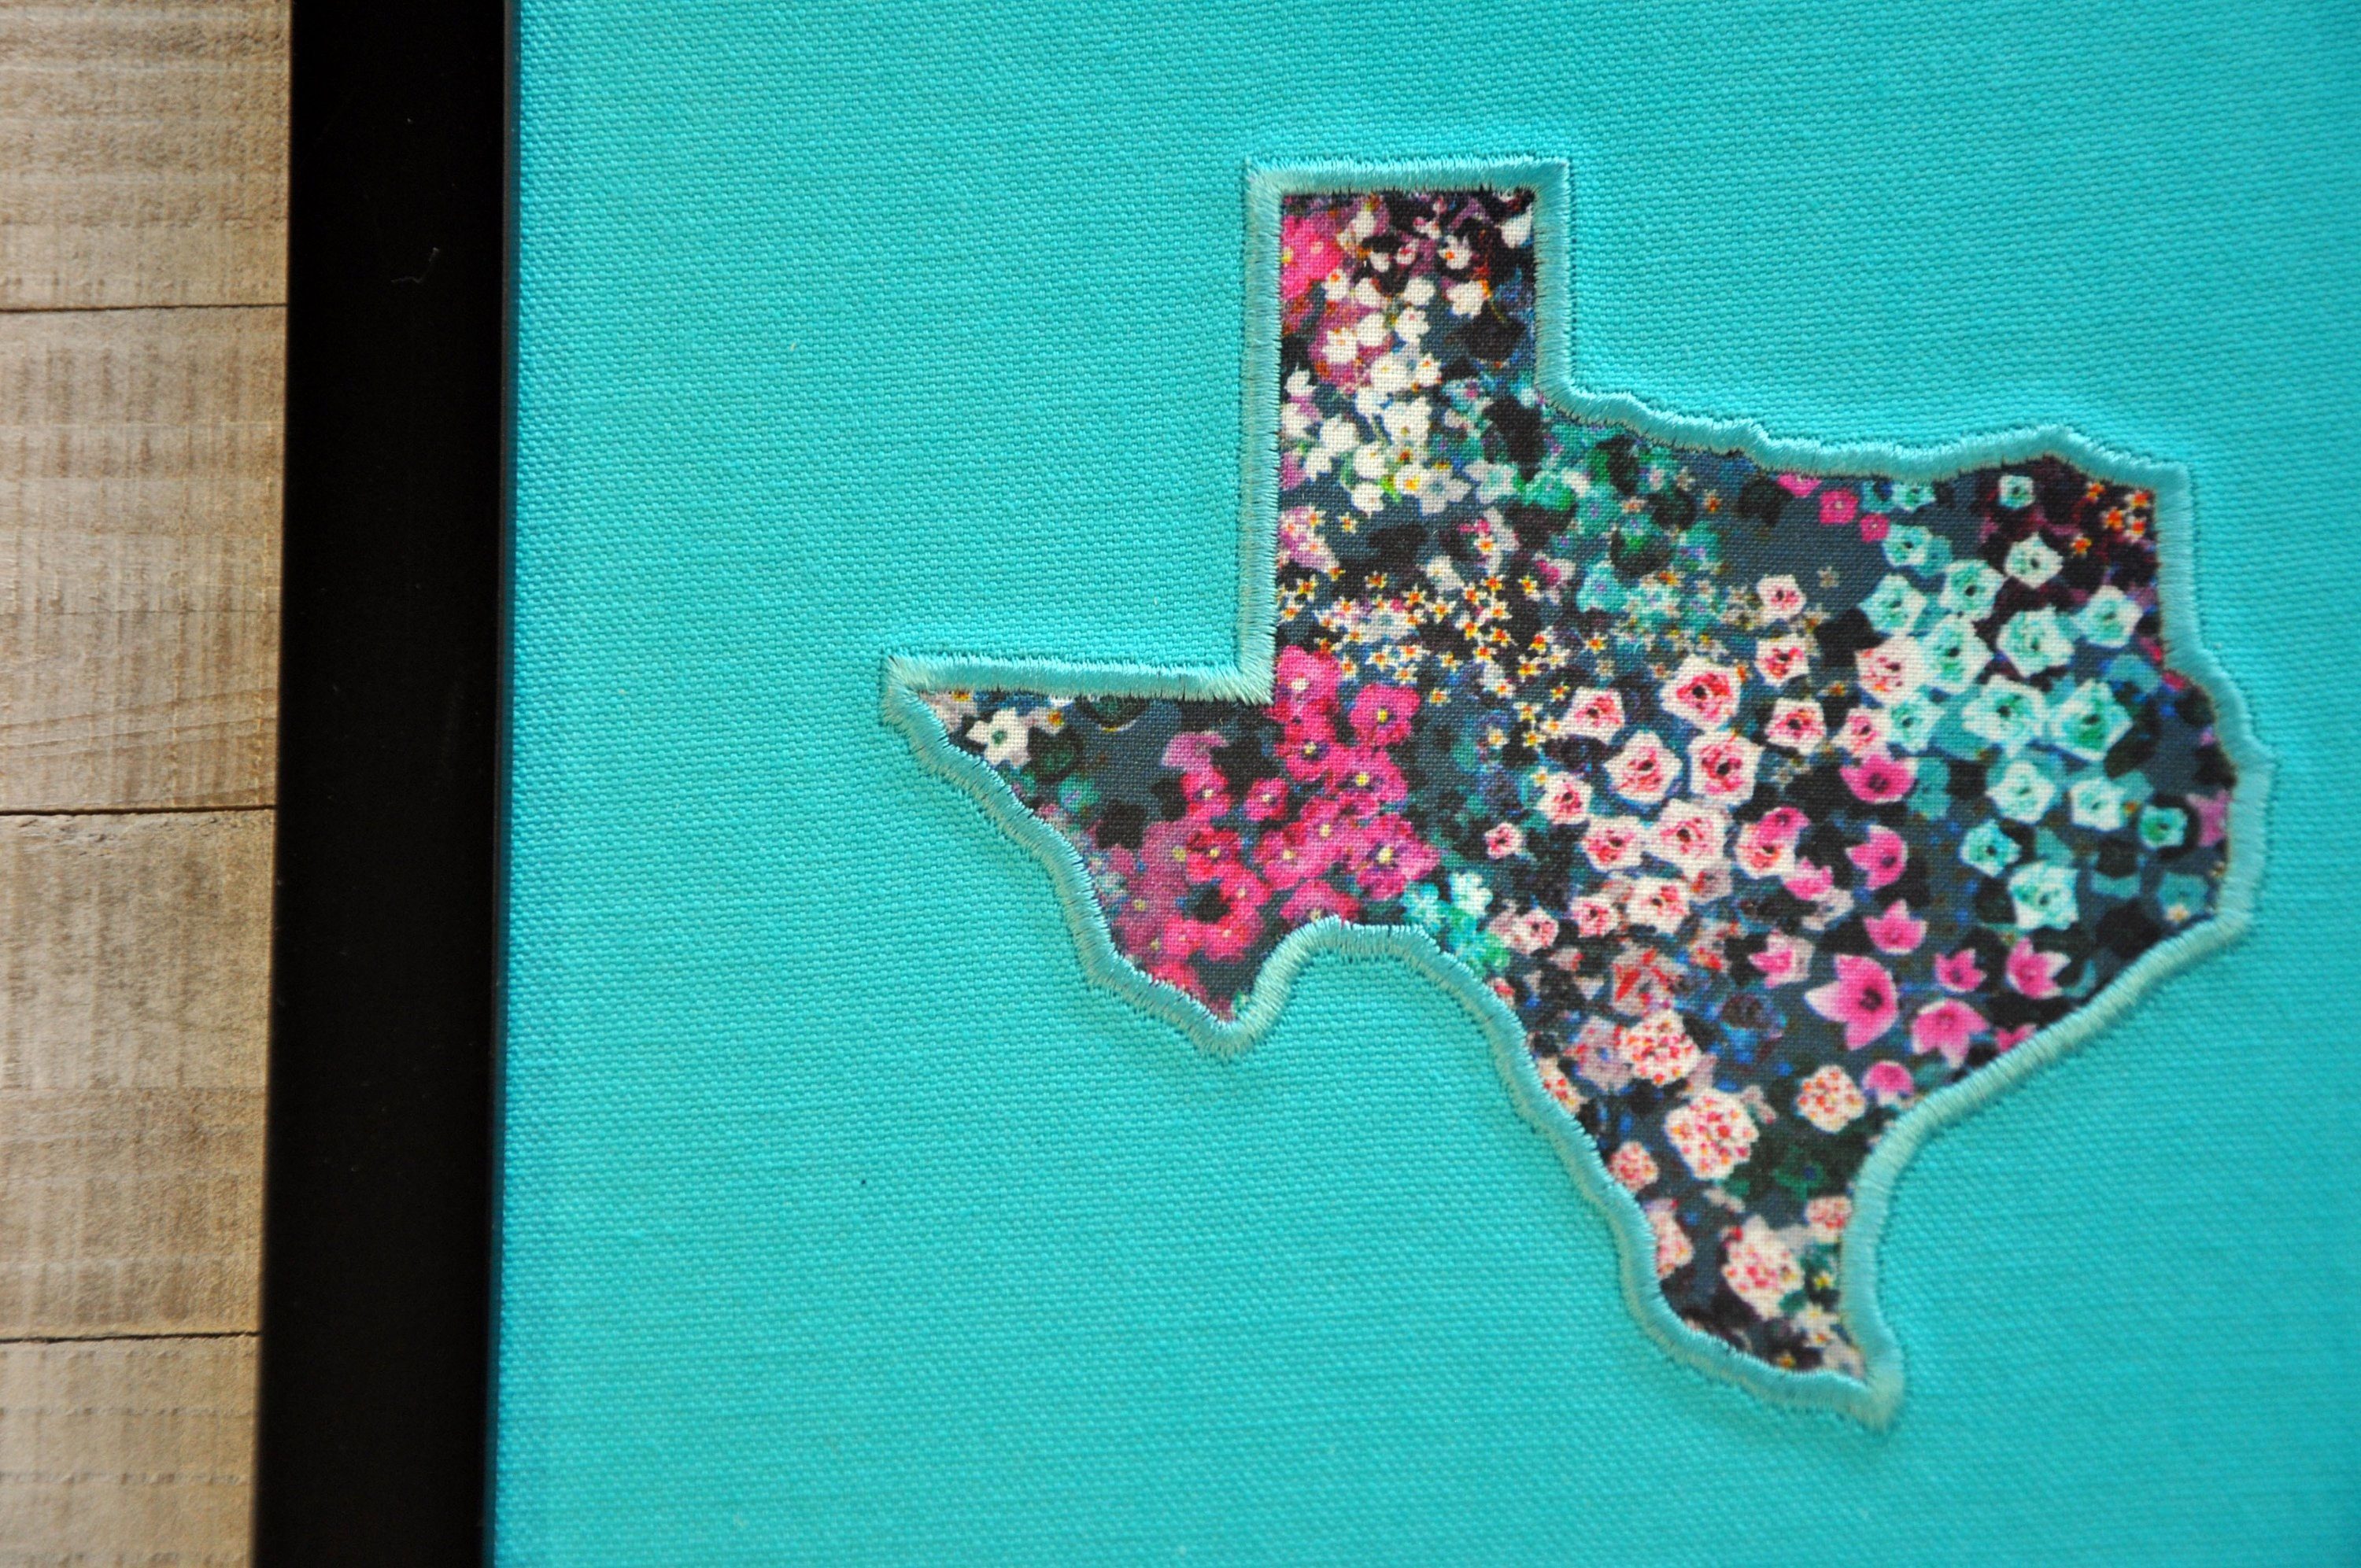 Texas Embroidery Canvas, Applique with Wildflowers Print, 8x10